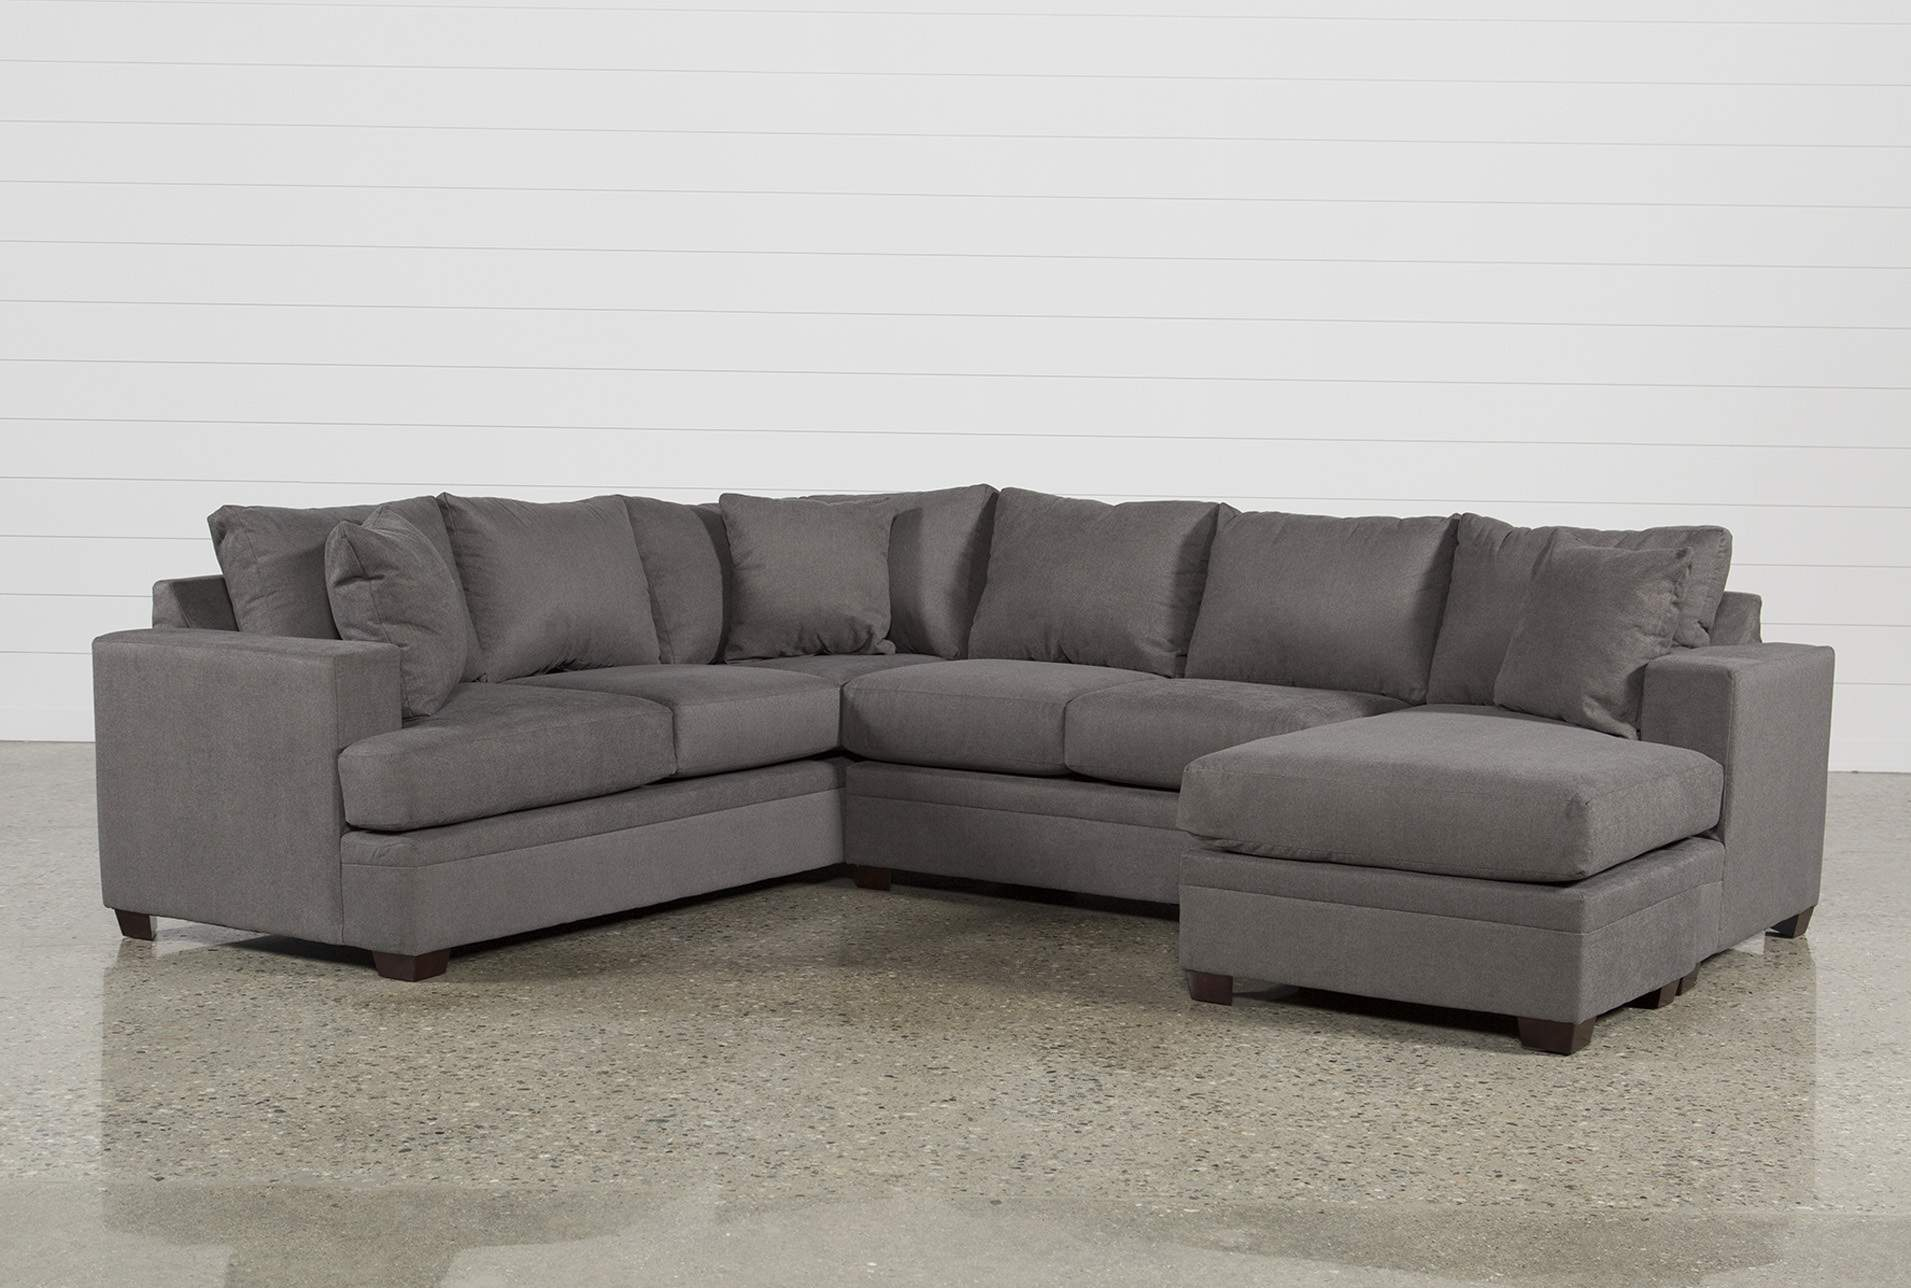 How to buy a grey sofa sectional